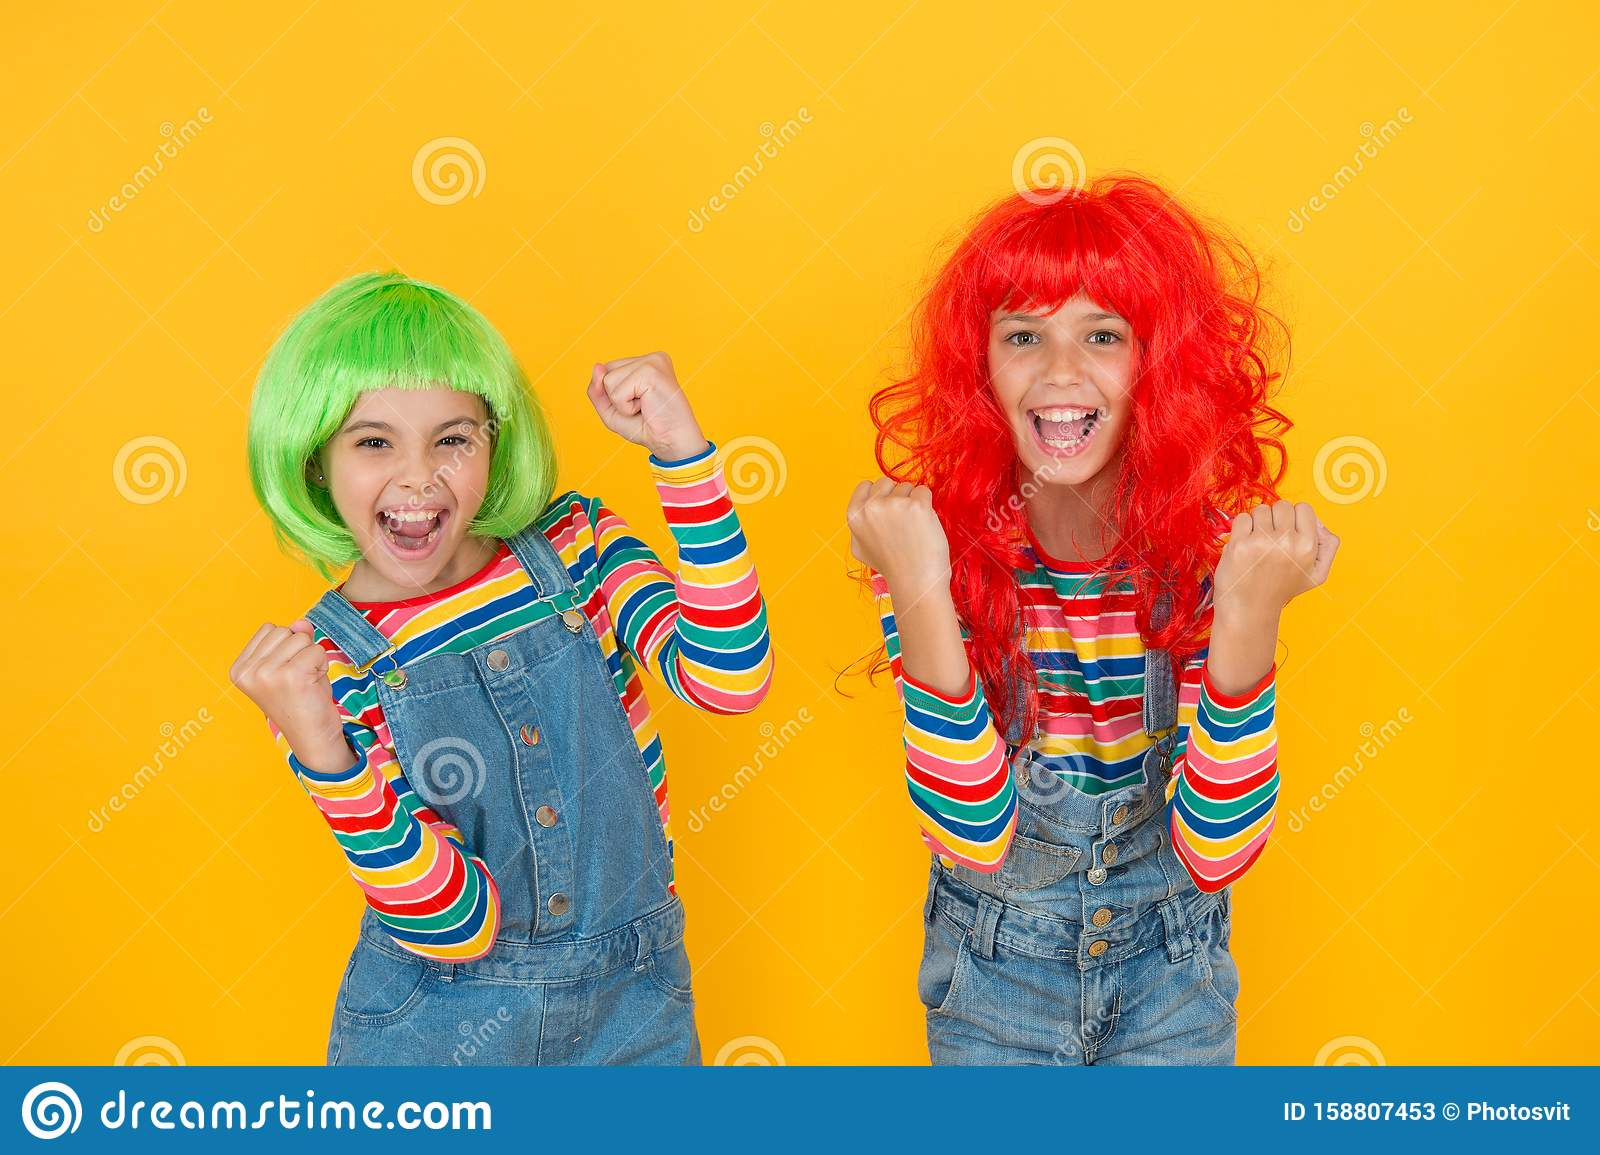 Sisters having fun. Semi permanent color cream. Colored clip in hair extensions. Change color. Kids girls with vibrant